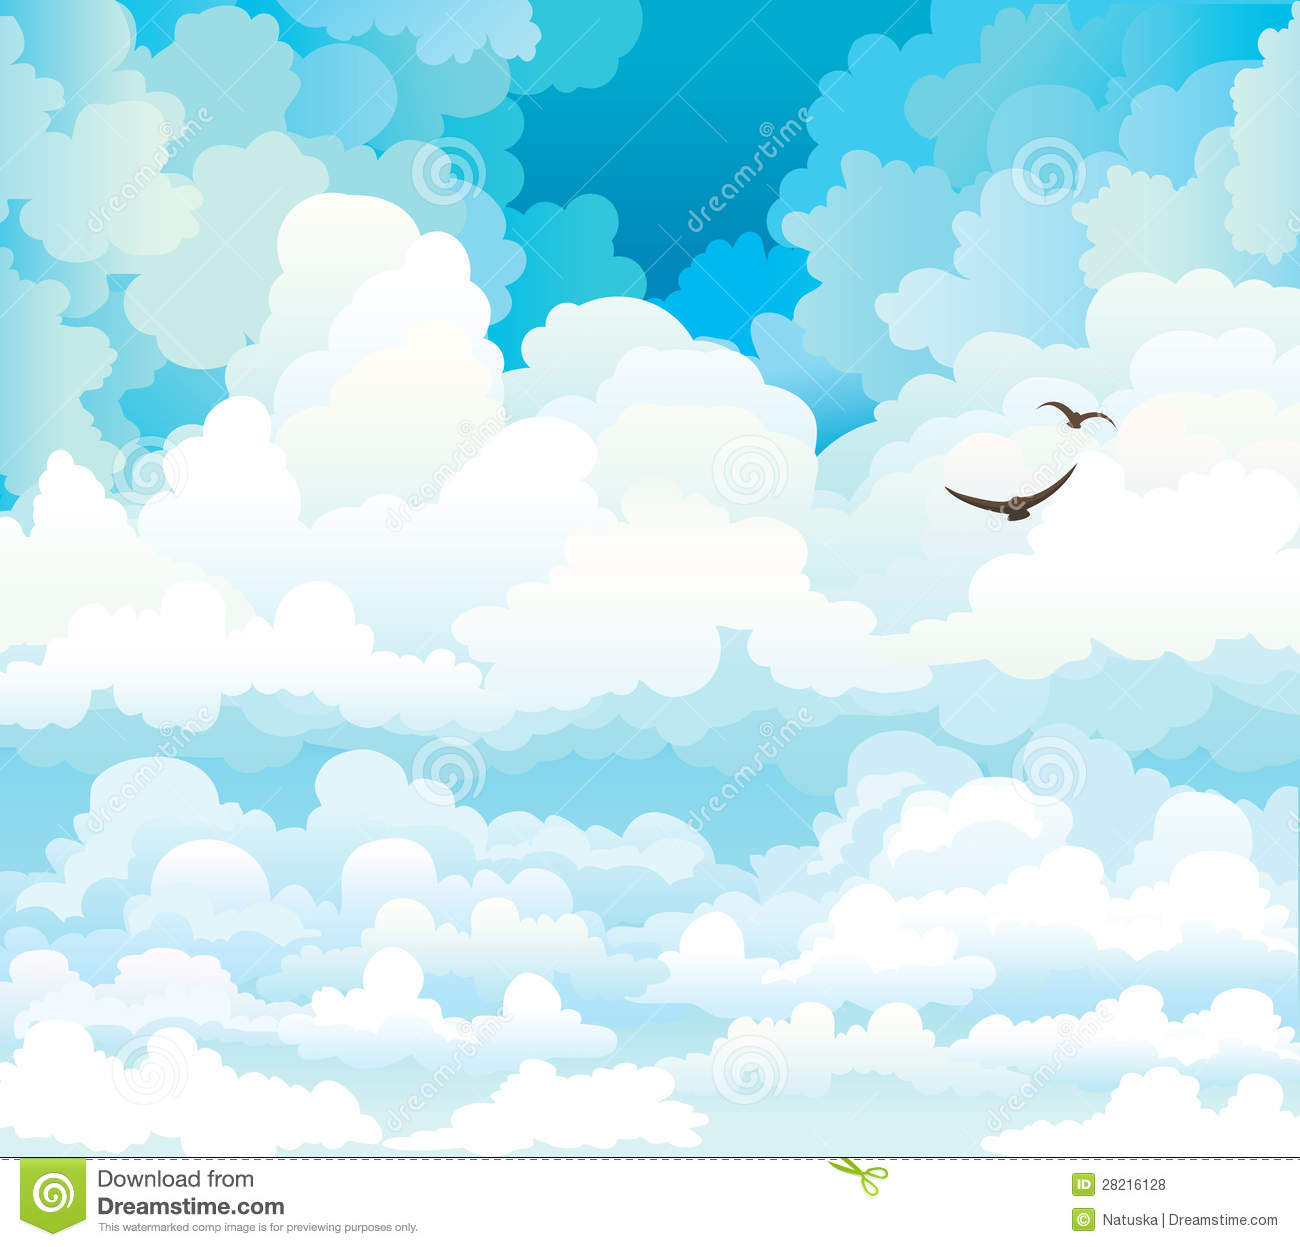 Sky with Clouds and Birds